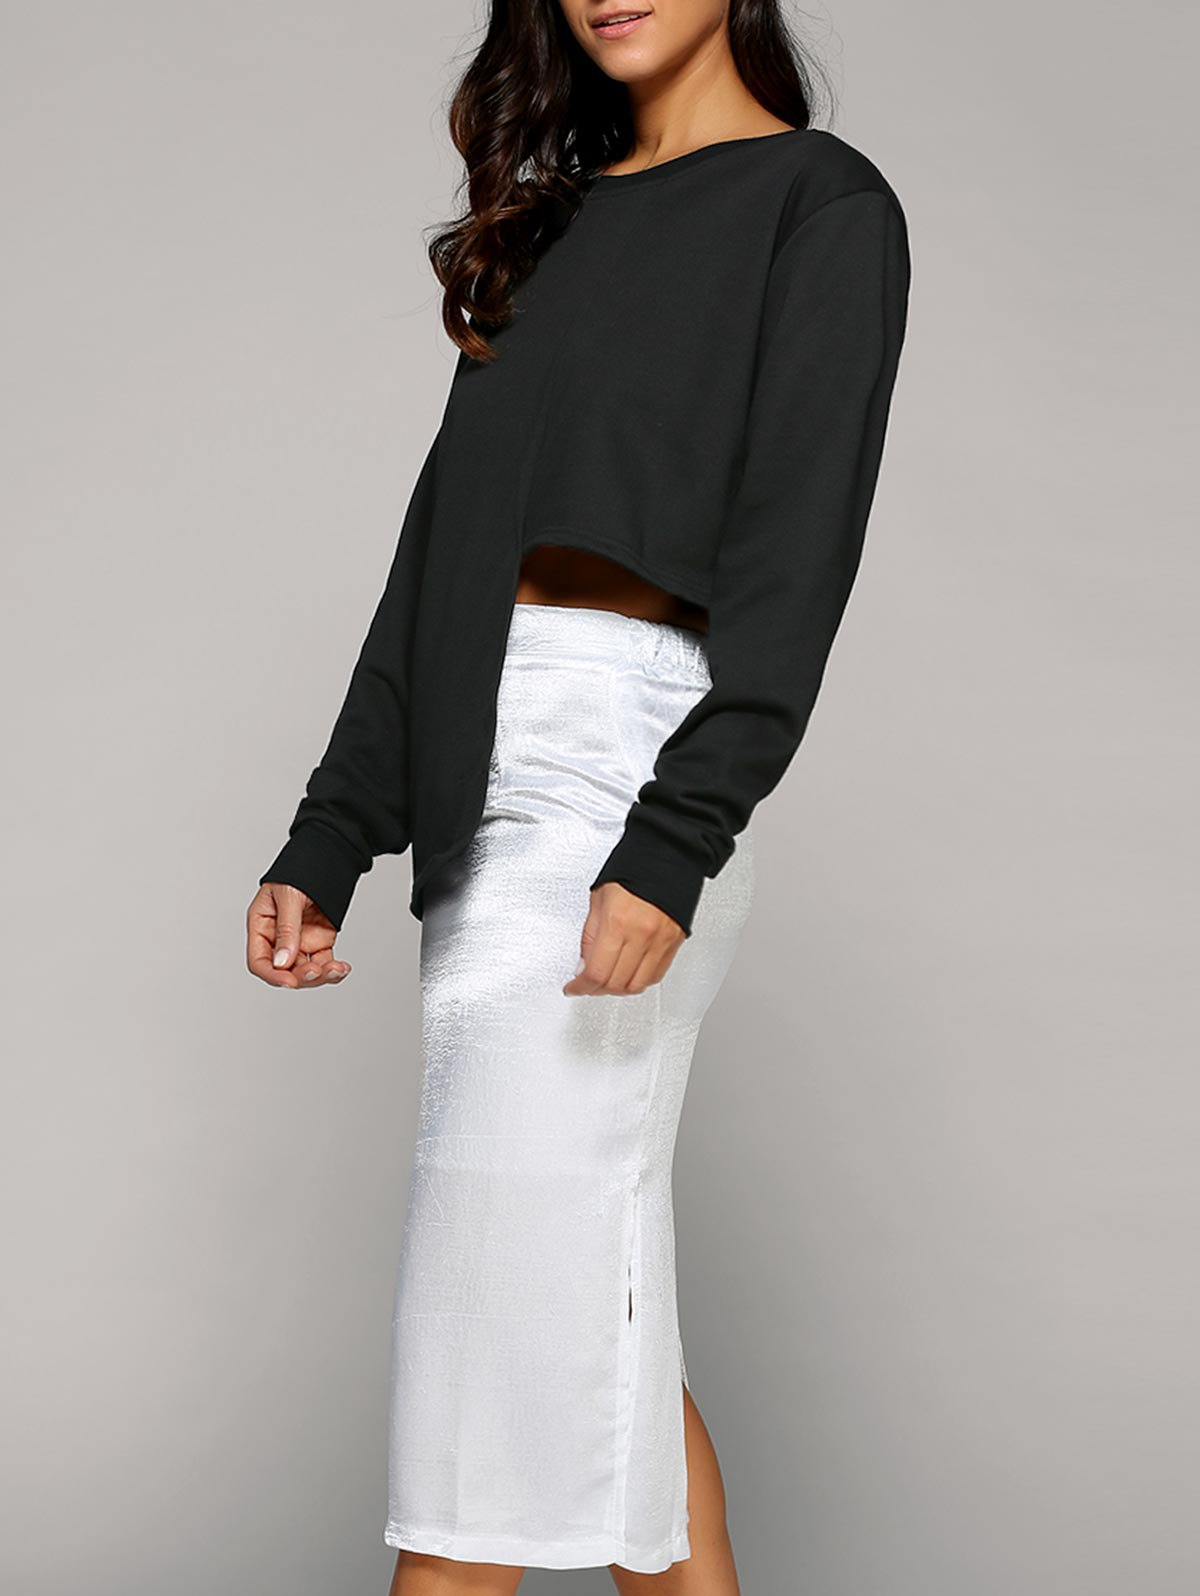 Asymmetric Sweatshirt With Slit SkirtClothes<br><br><br>Size: ONE SIZE<br>Color: WHITE AND BLACK